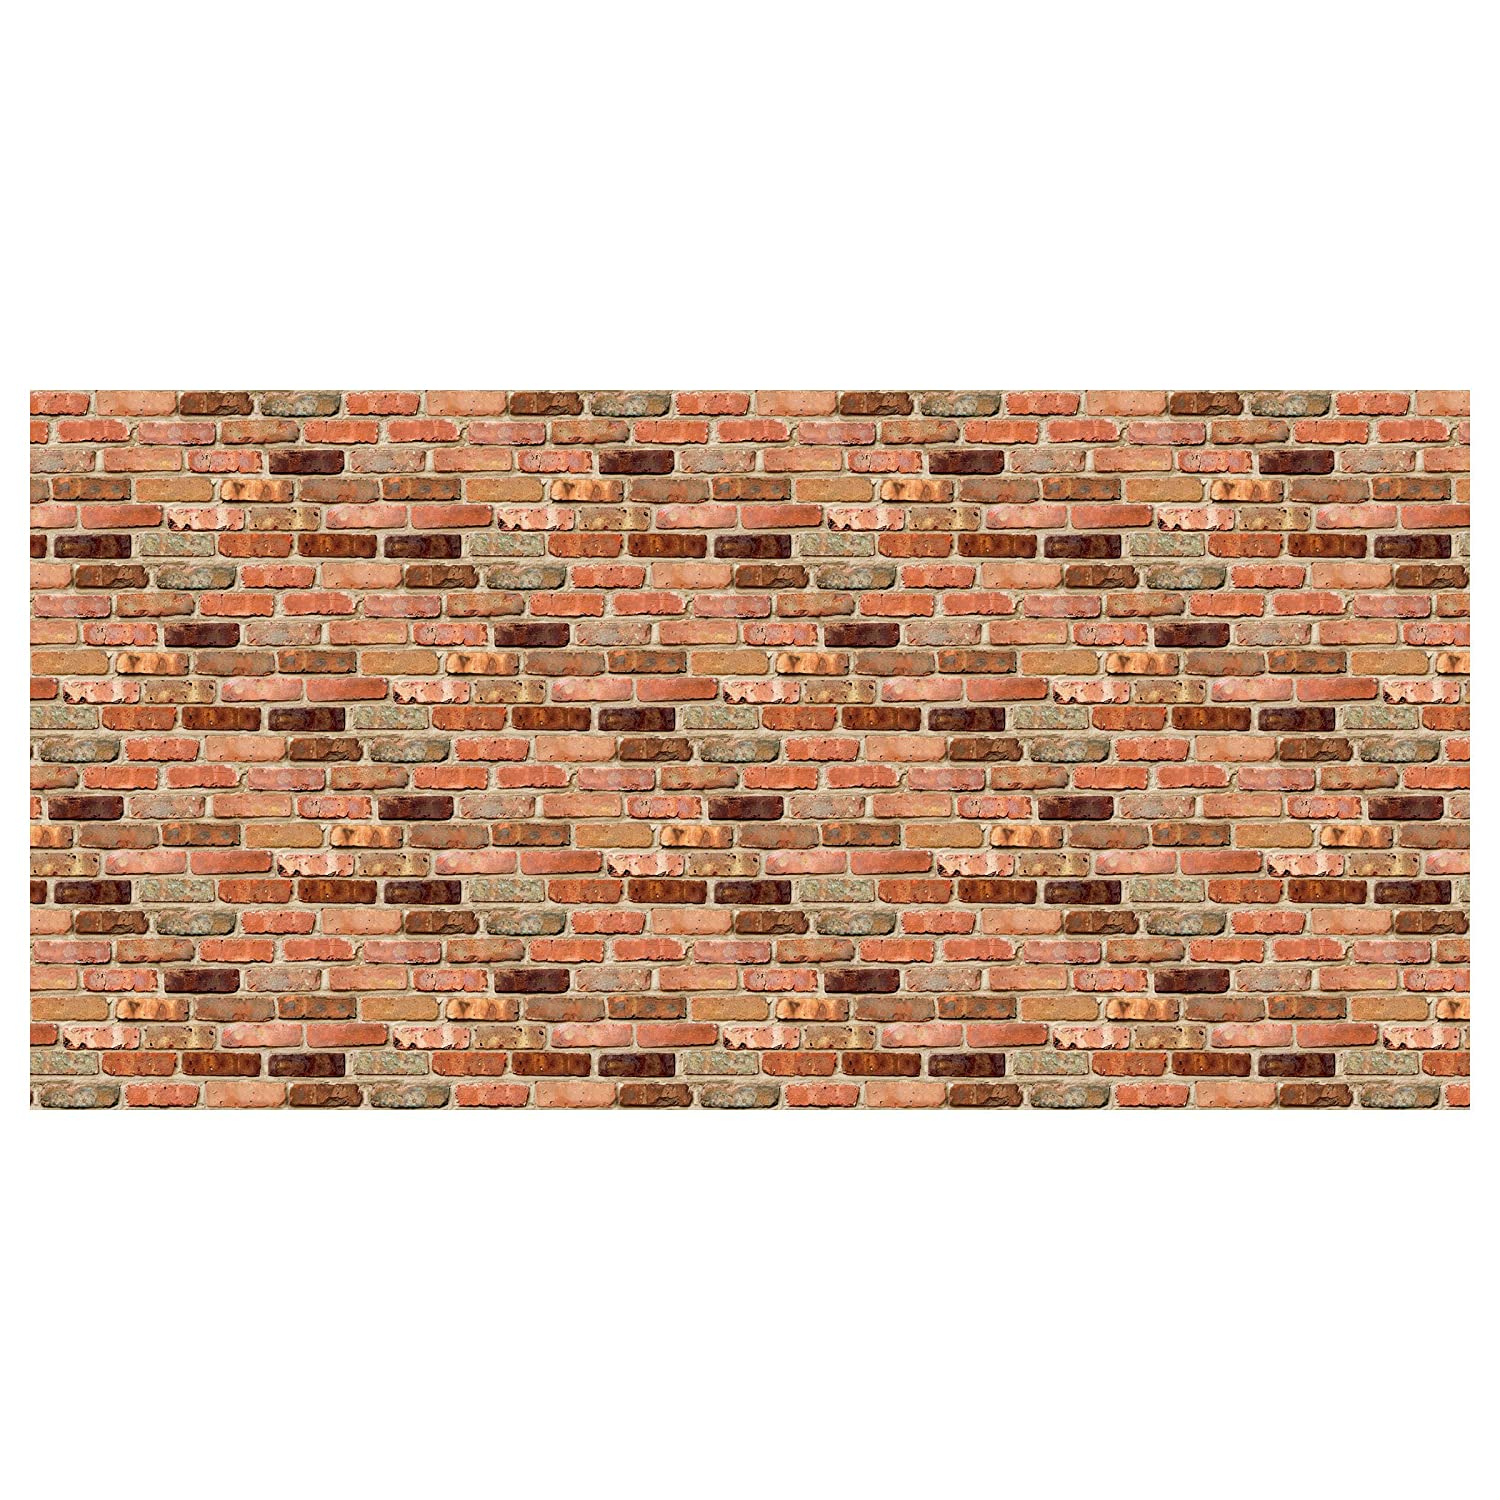 Design Roll Reclaimed Brick B01BIPGZ4U Reclaimed Brick Reclaimed Brick